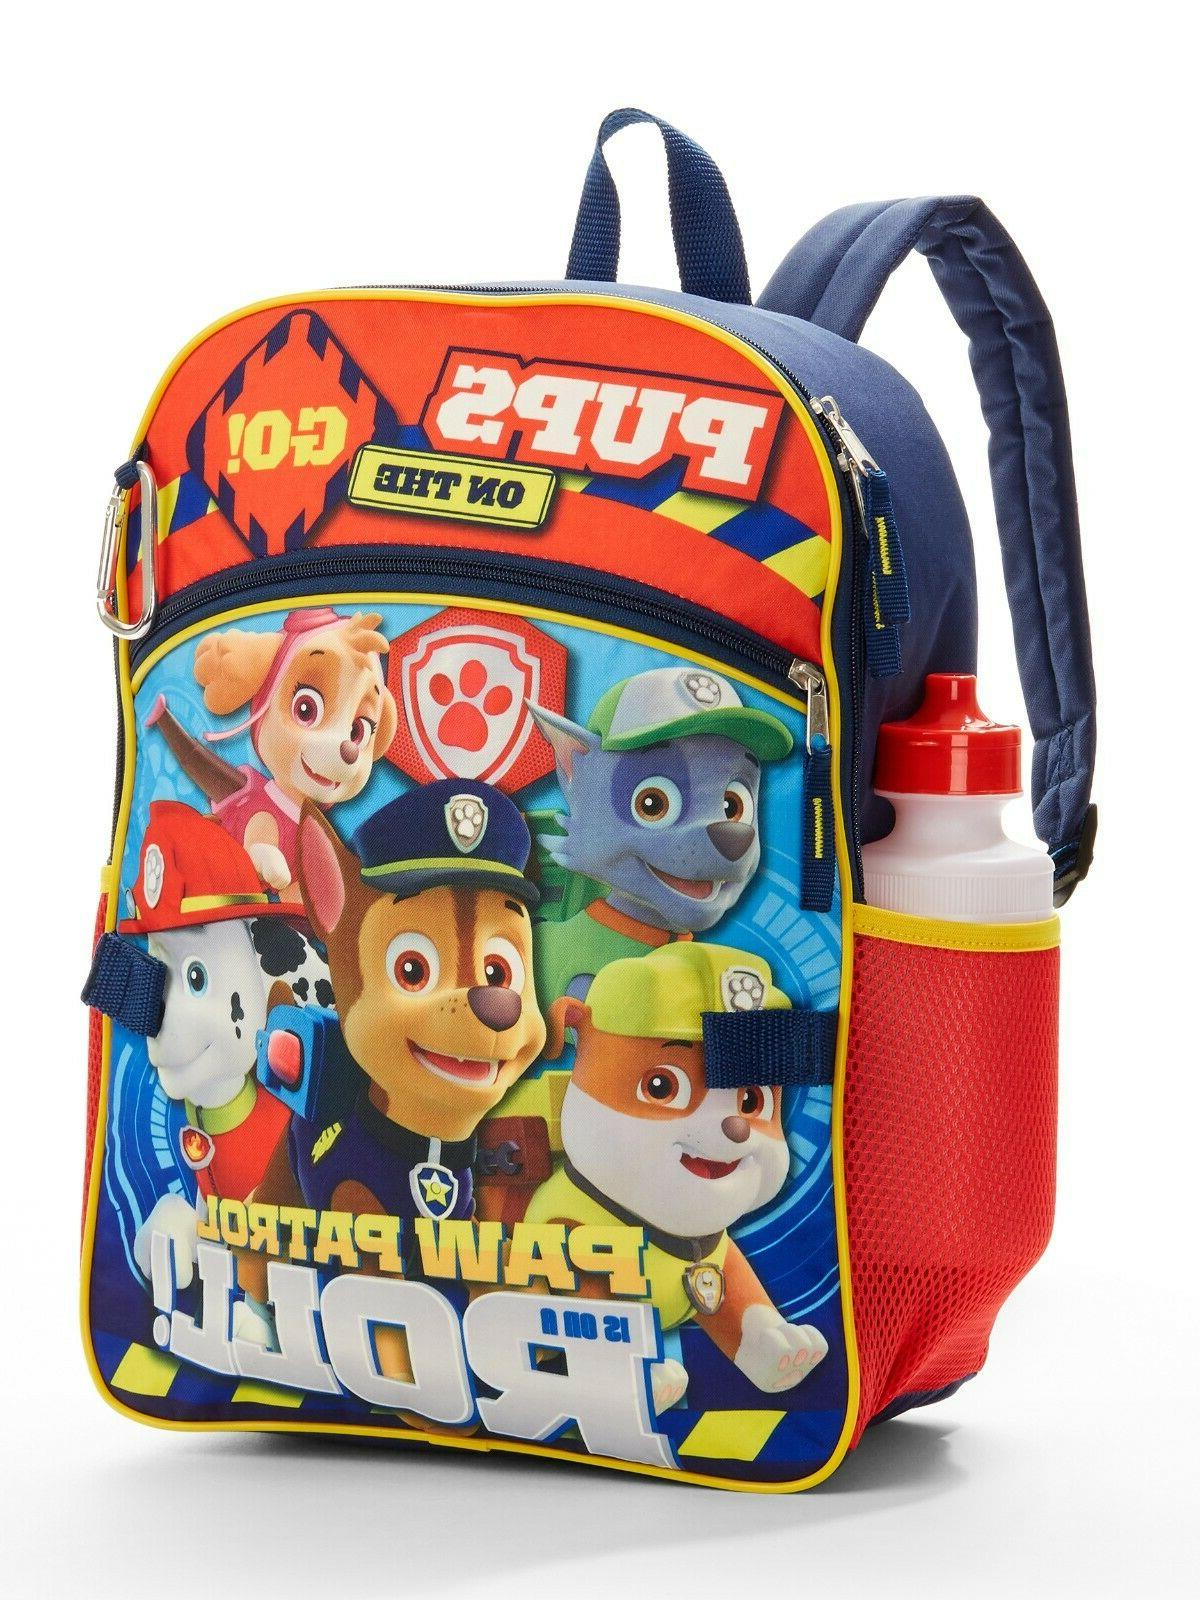 Paw Patrol Lunch Box Book 5 SET Kids Toy Gift